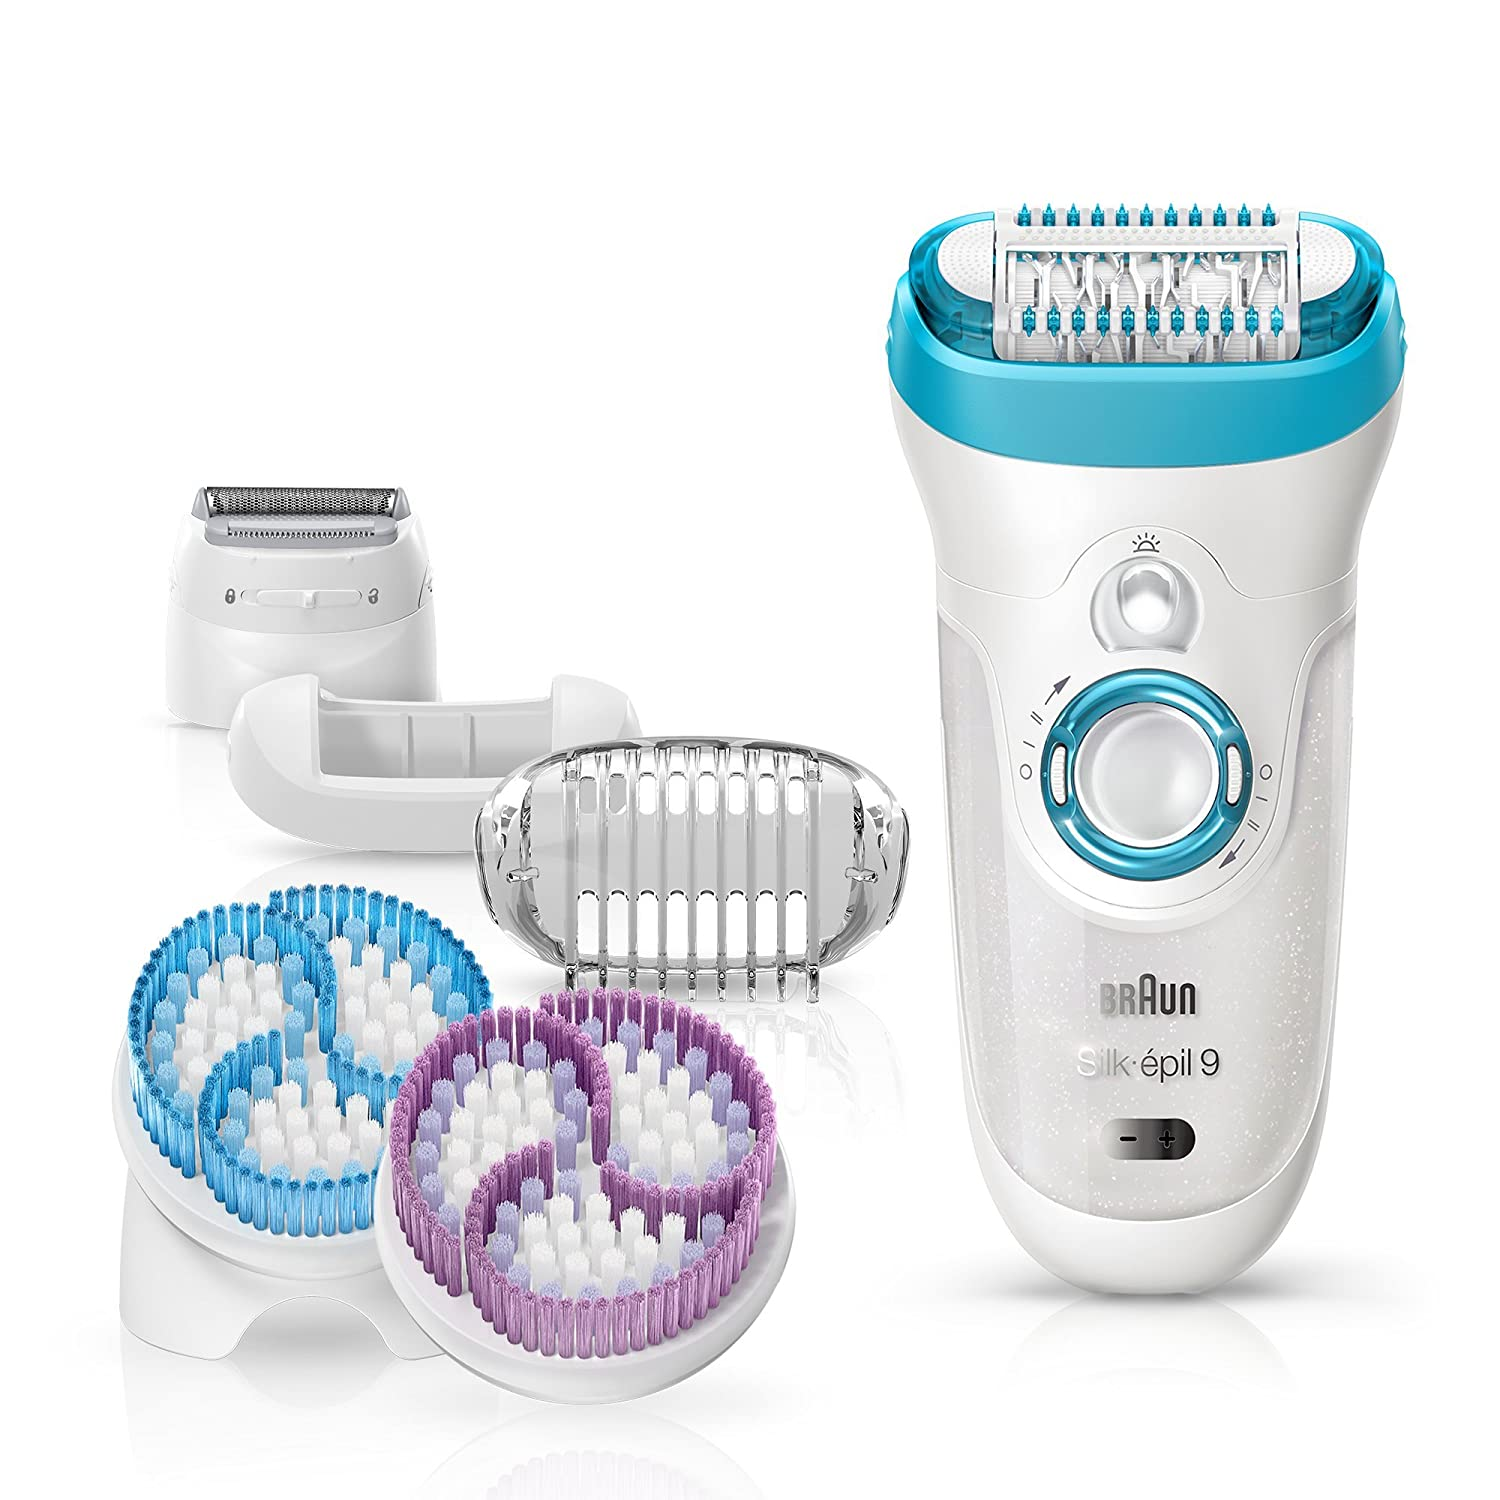 Braun Silk-épil 9 9-961e SkinSpa 4-in-1 Wet and Dry Epilator and Exfoliation System with 6 Extras, White Procter & Gamble 81475989